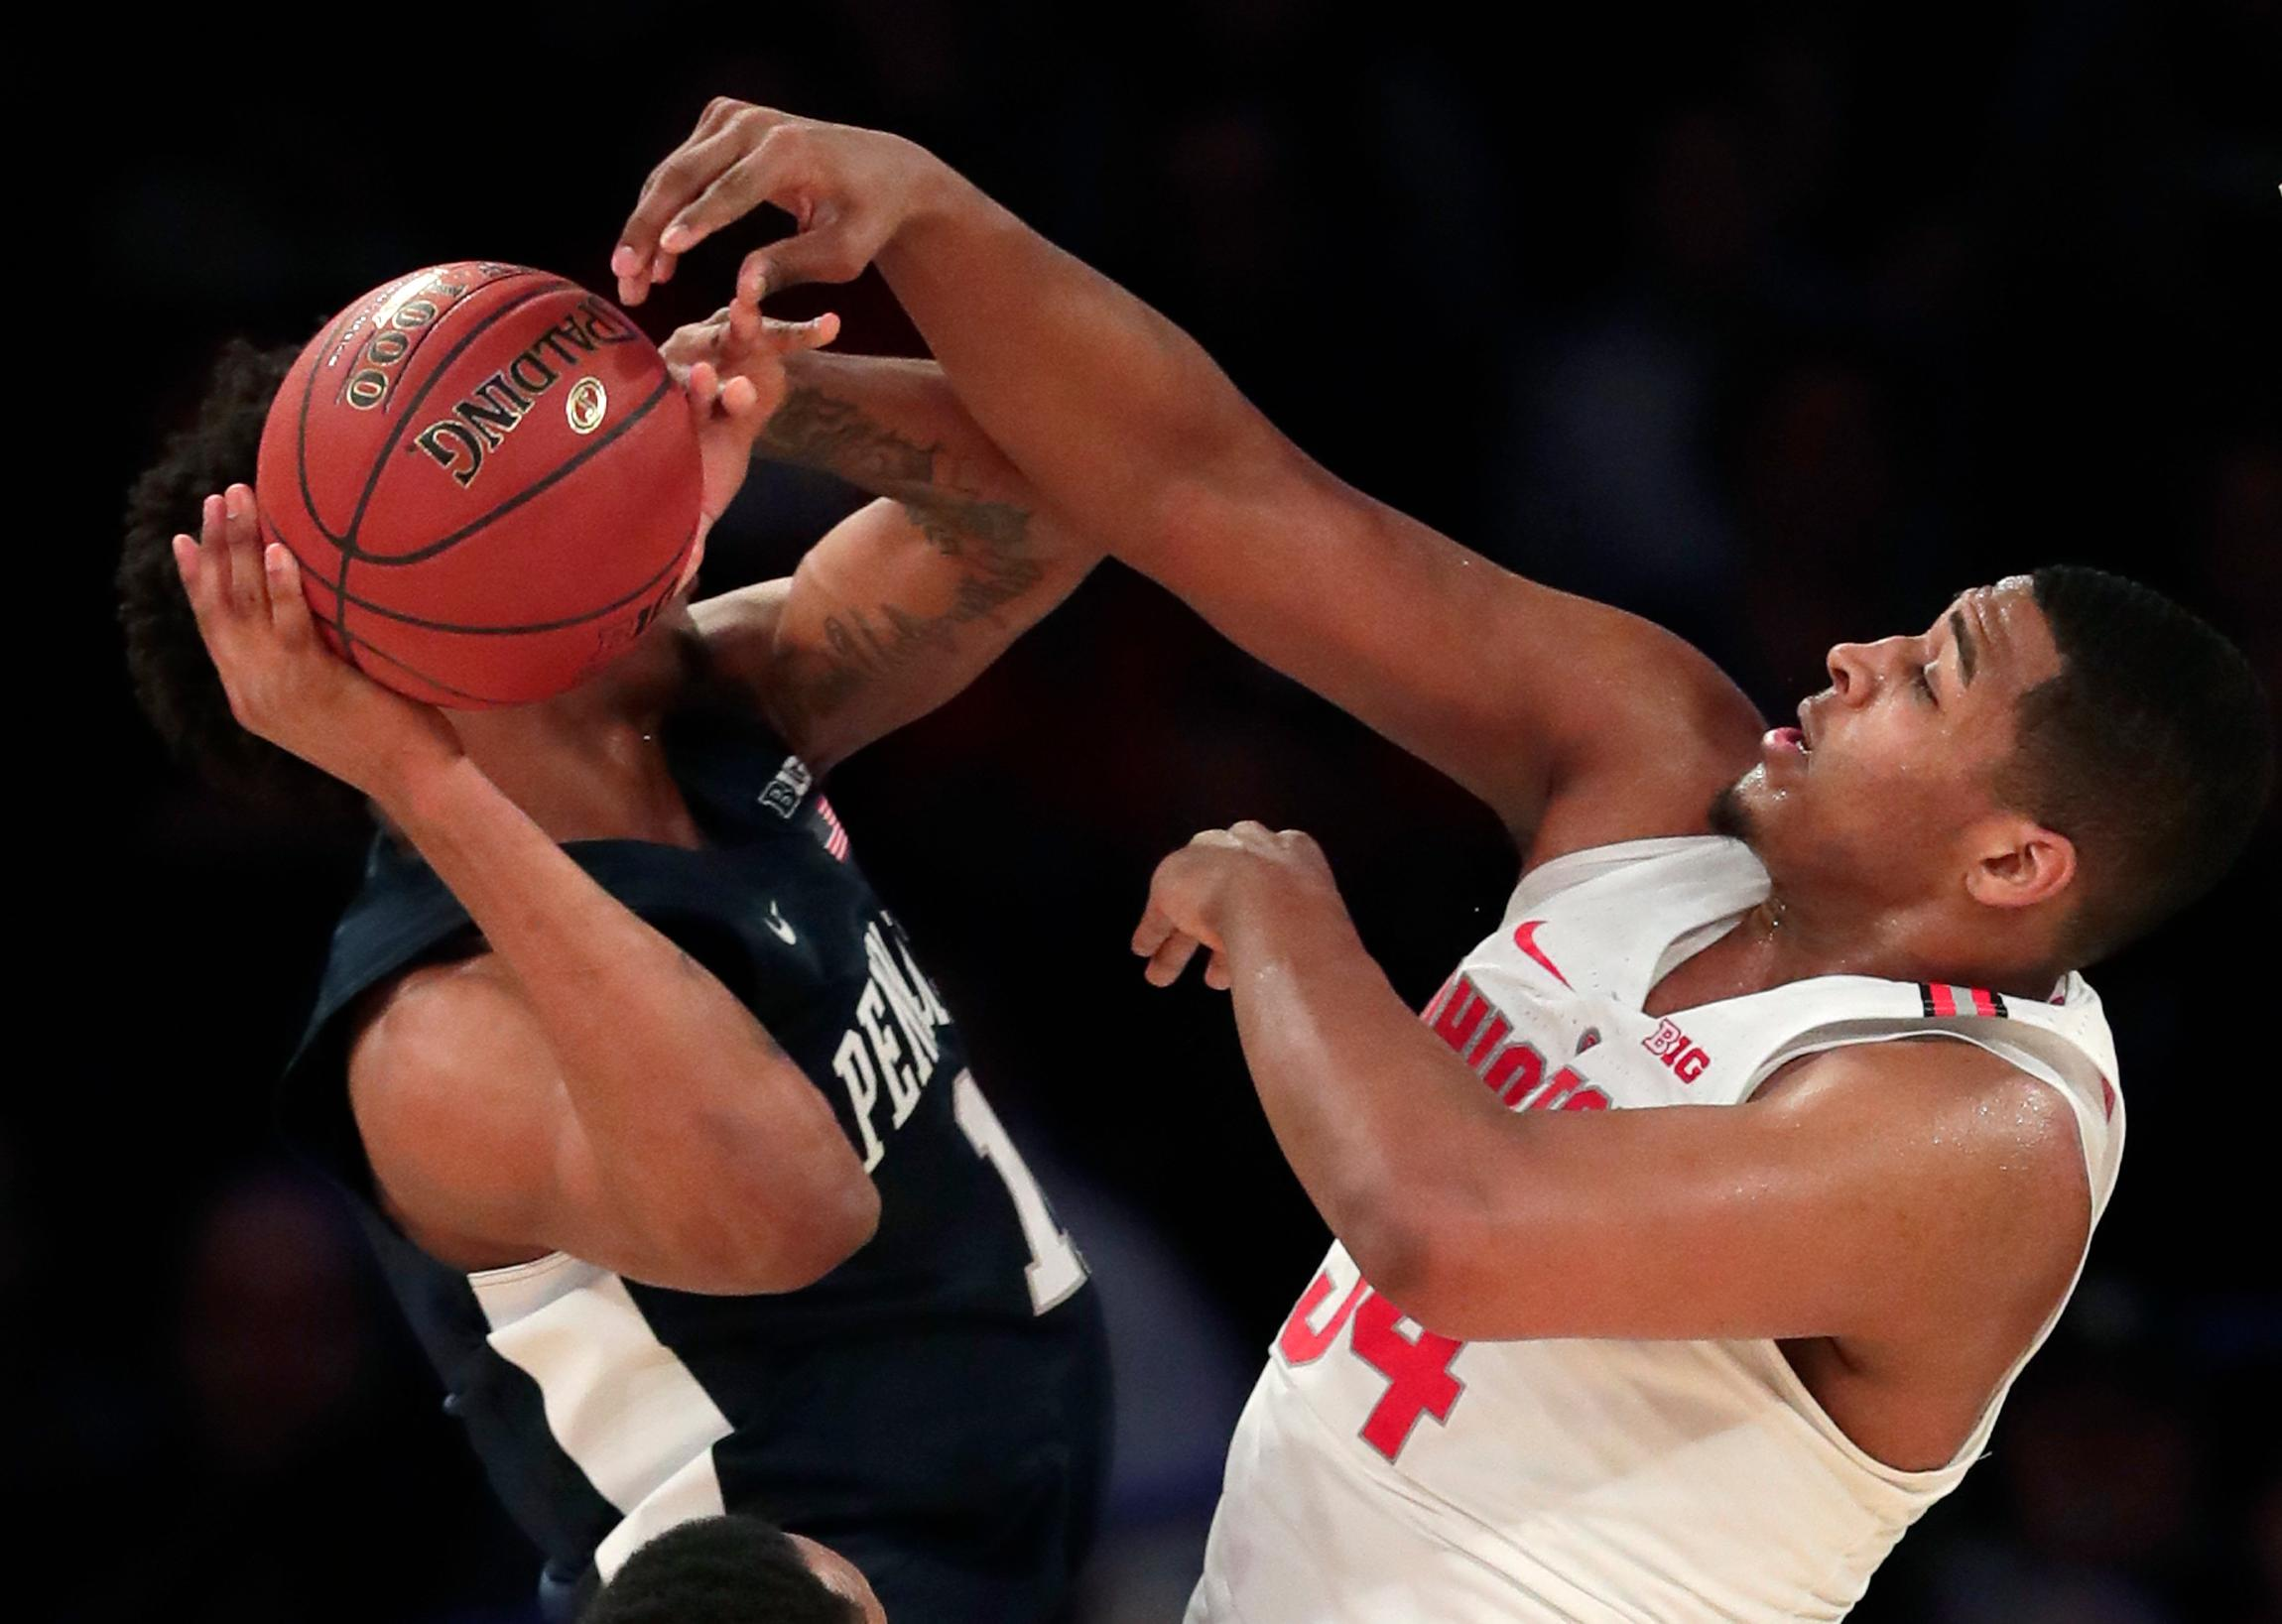 Penn State forward Lamar Stevens (11) is fouled while shooting by Ohio State forward Kaleb Wesson (34) during the first half of an NCAA Big Ten Conference tournament college basketball game, Friday, March 2, 2018, in New York. (AP Photo/Julie Jacobson)